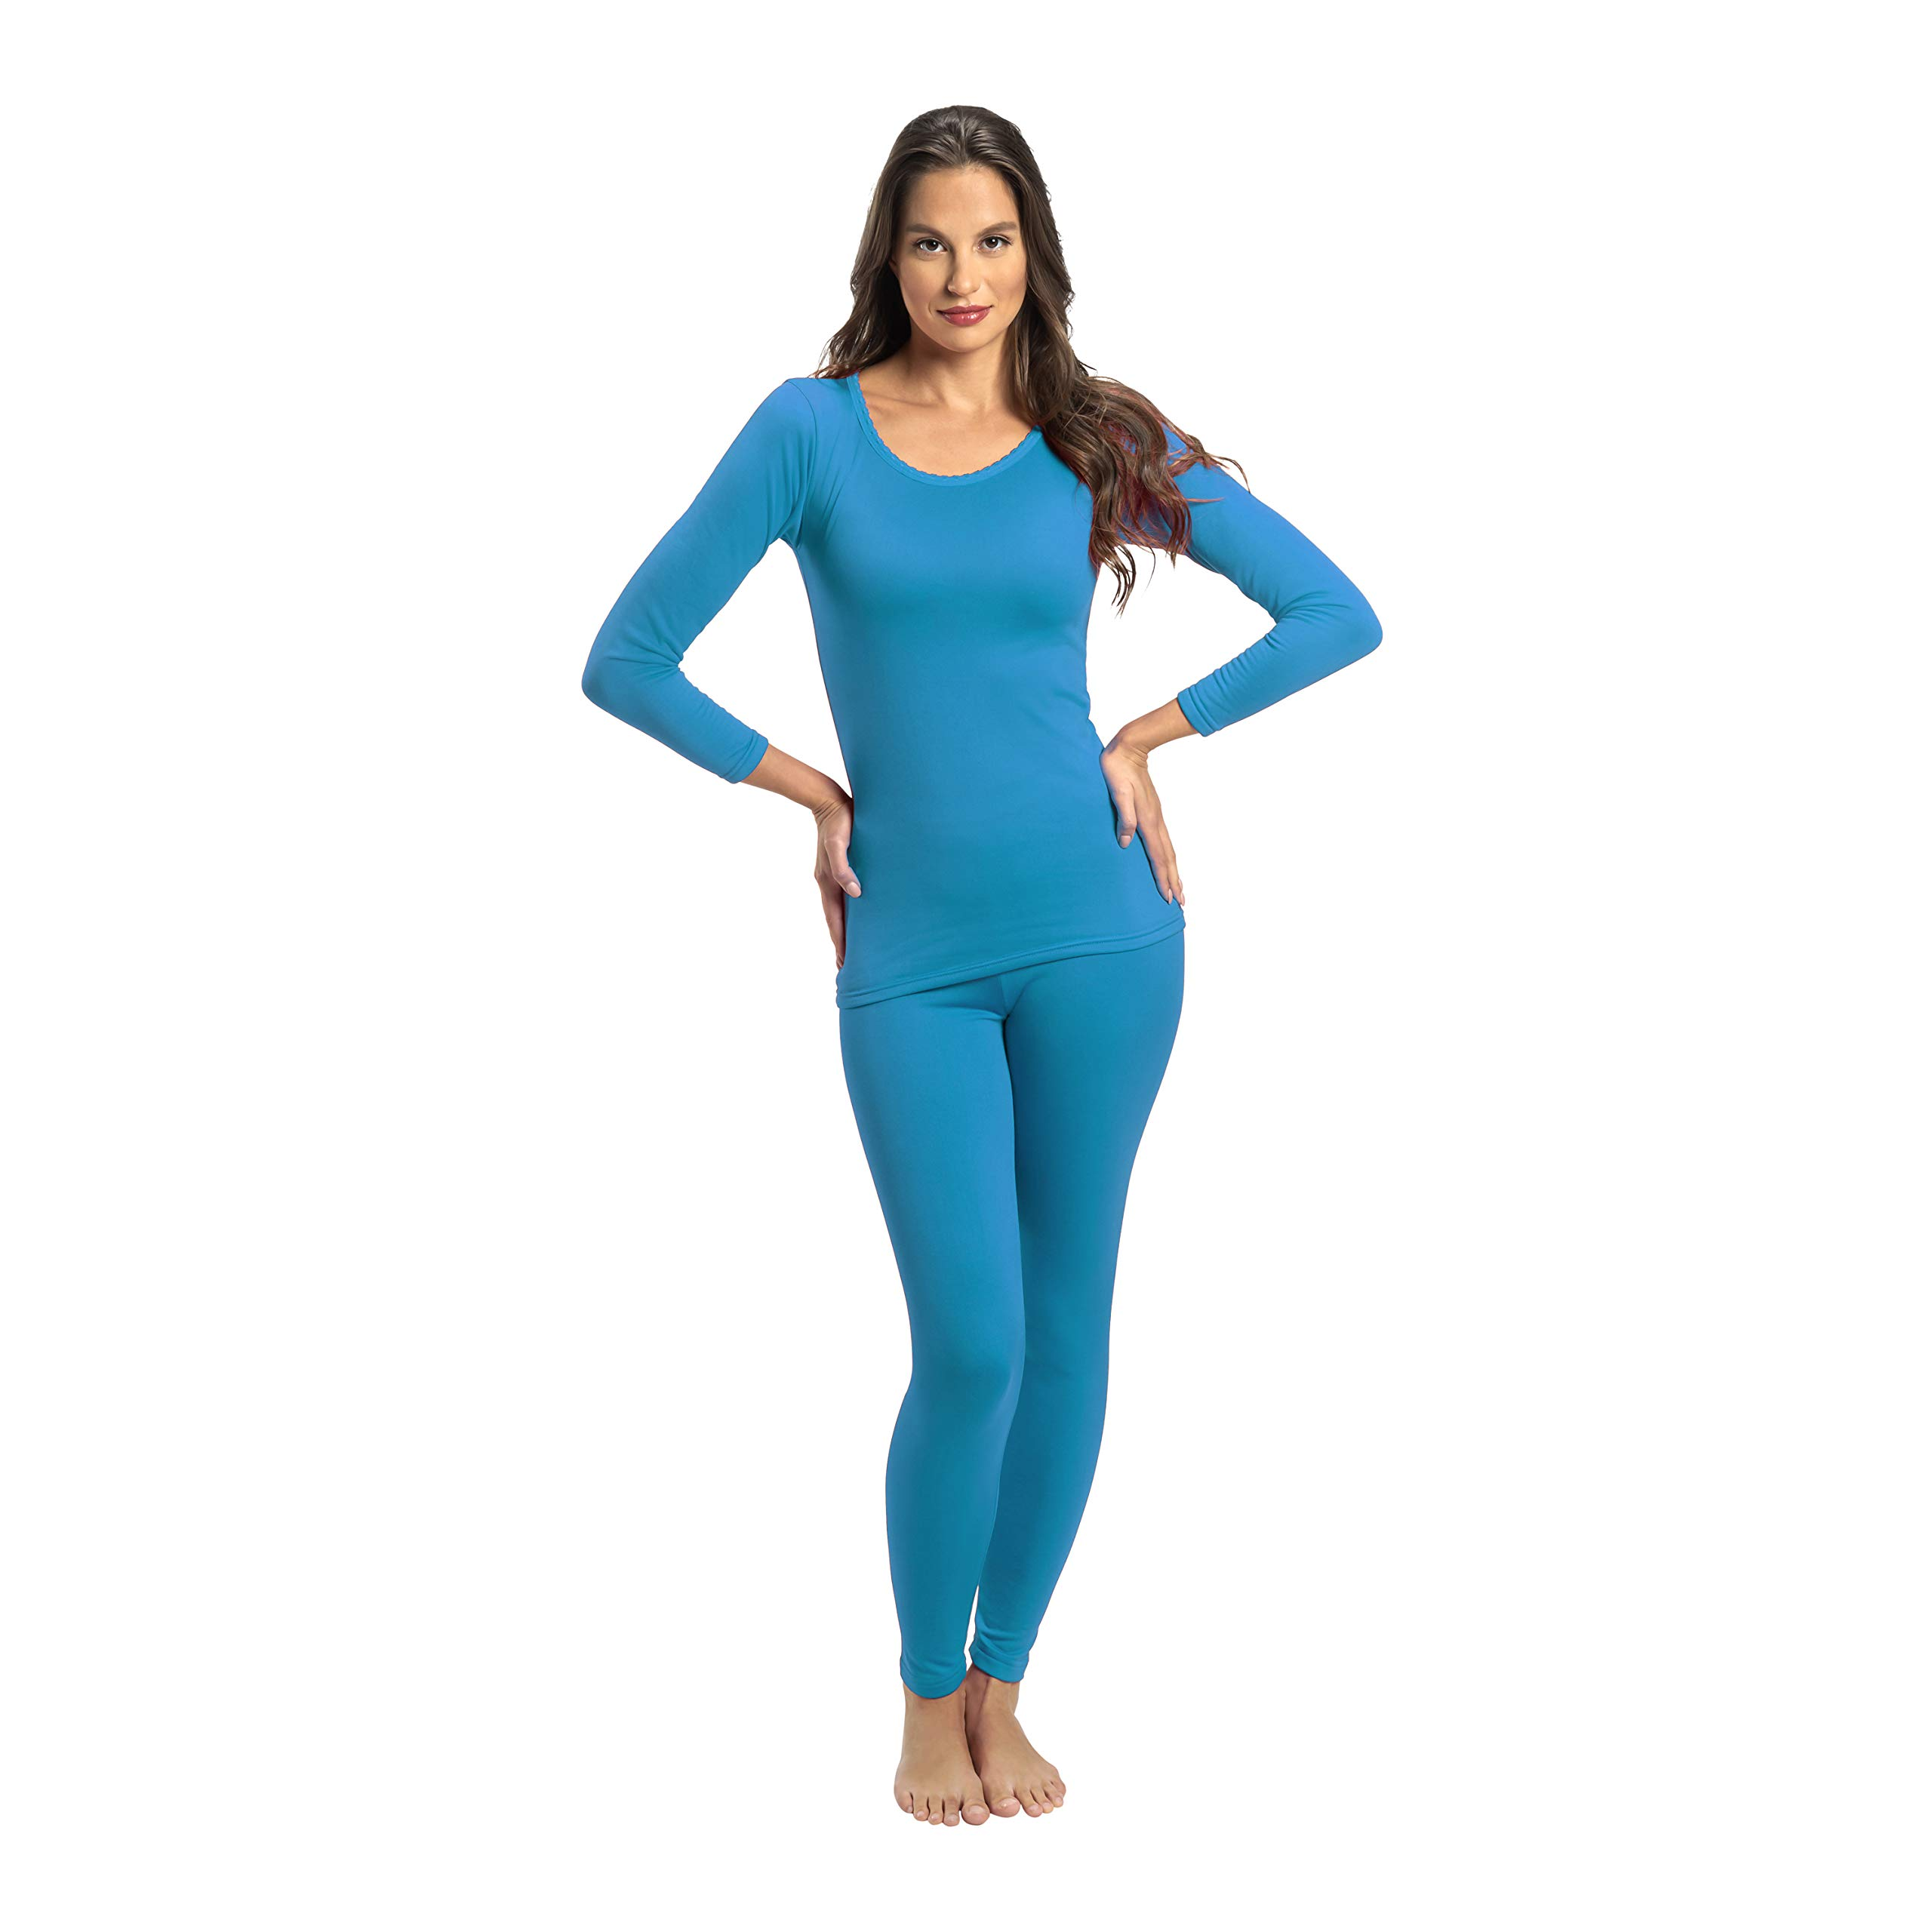 Rocky Thermal Underwear for Women Fleece Lined Thermals Women's Base Layer Long John Set Teal by Rocky